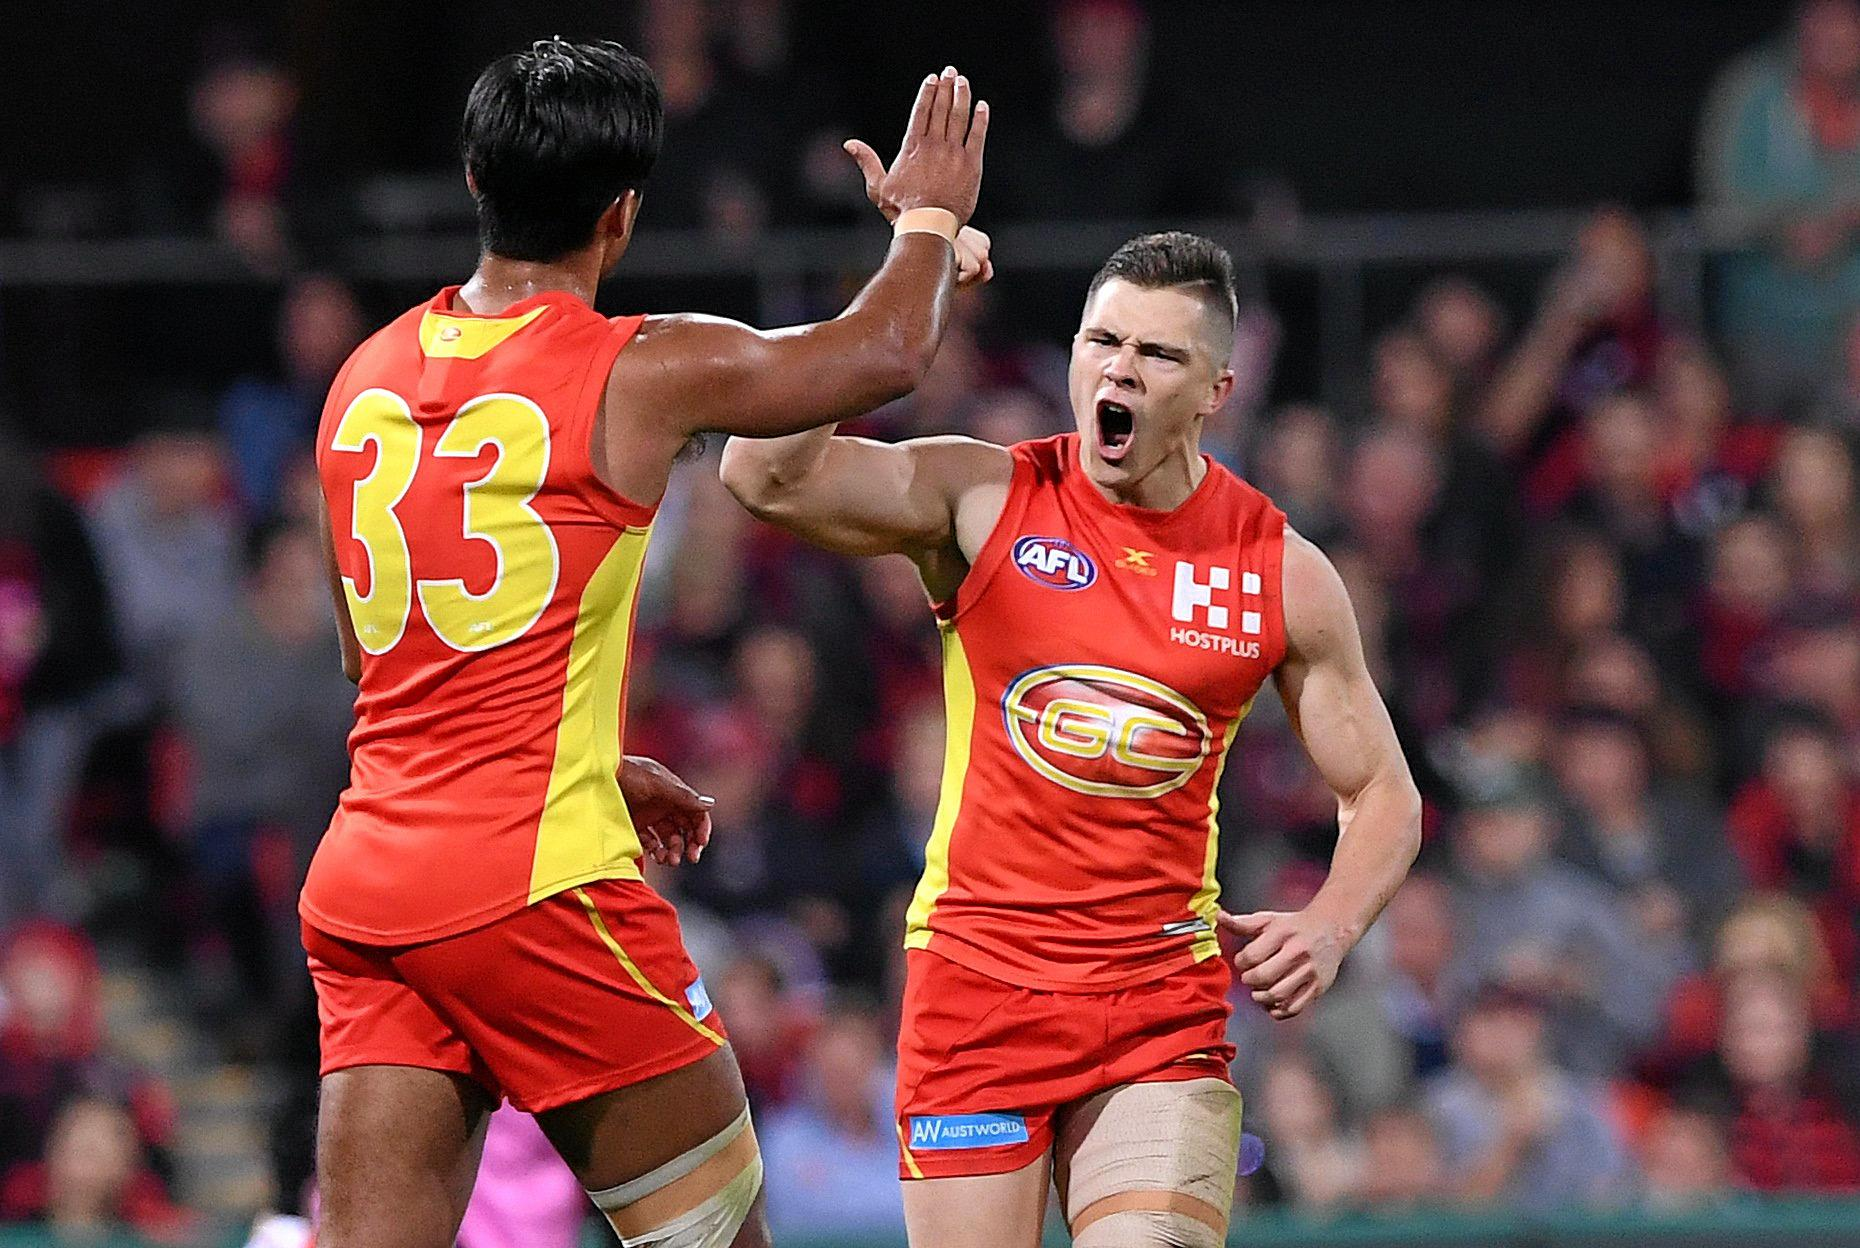 Gold Coast Suns player Ben Ainsworth (right) celebrates after kicking a goal against Essendon in round 22 last season.